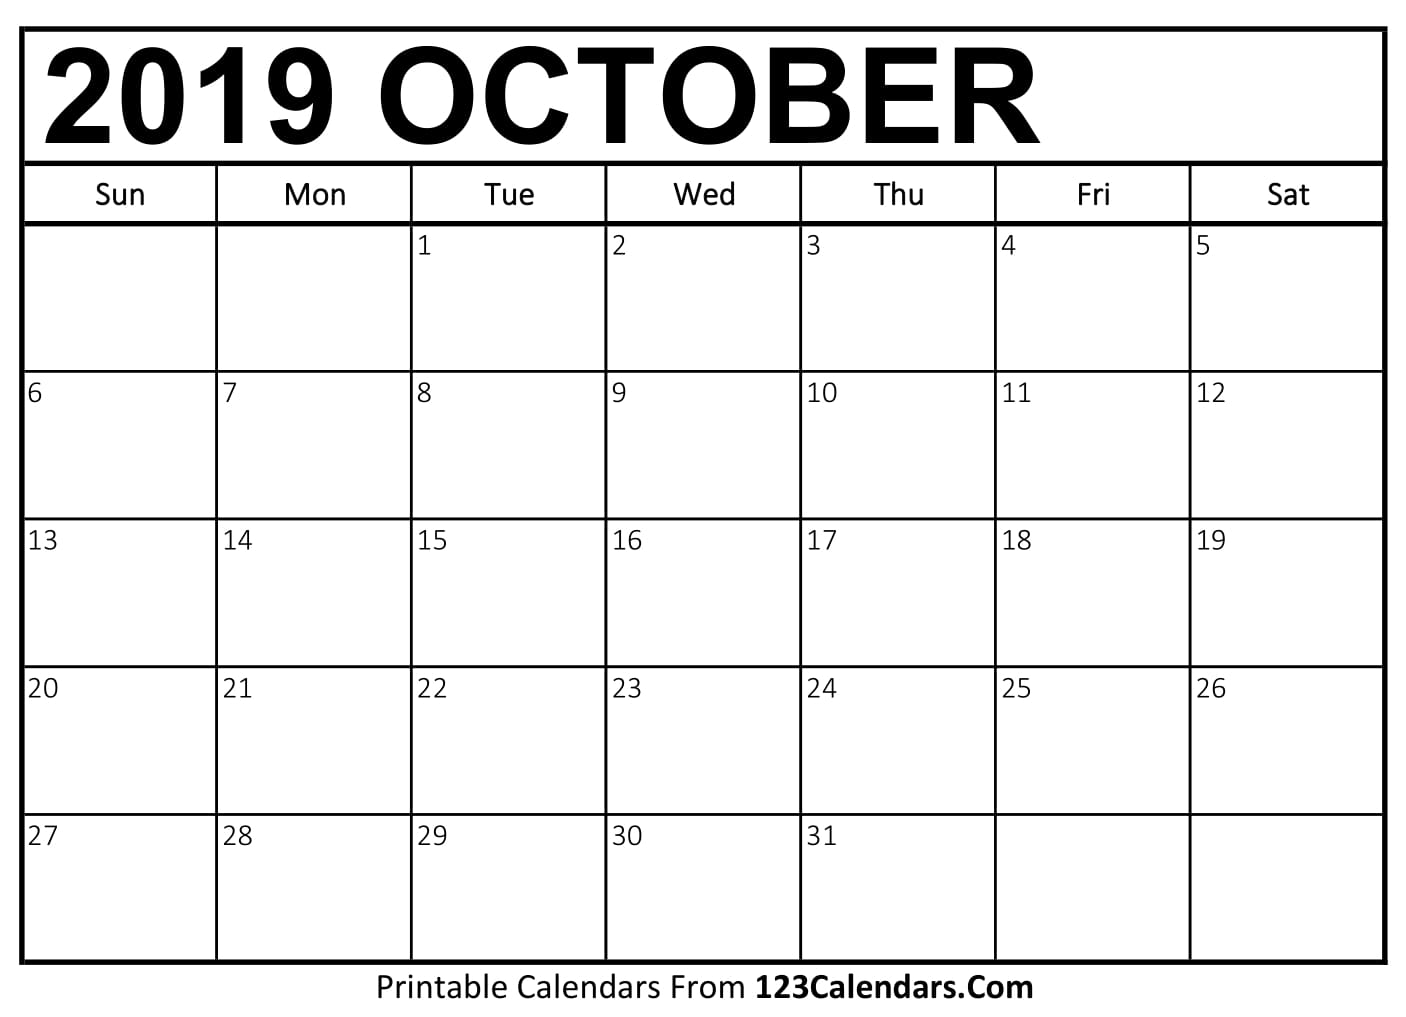 October 2019 Calendar Blank Easily Printable 123calendars